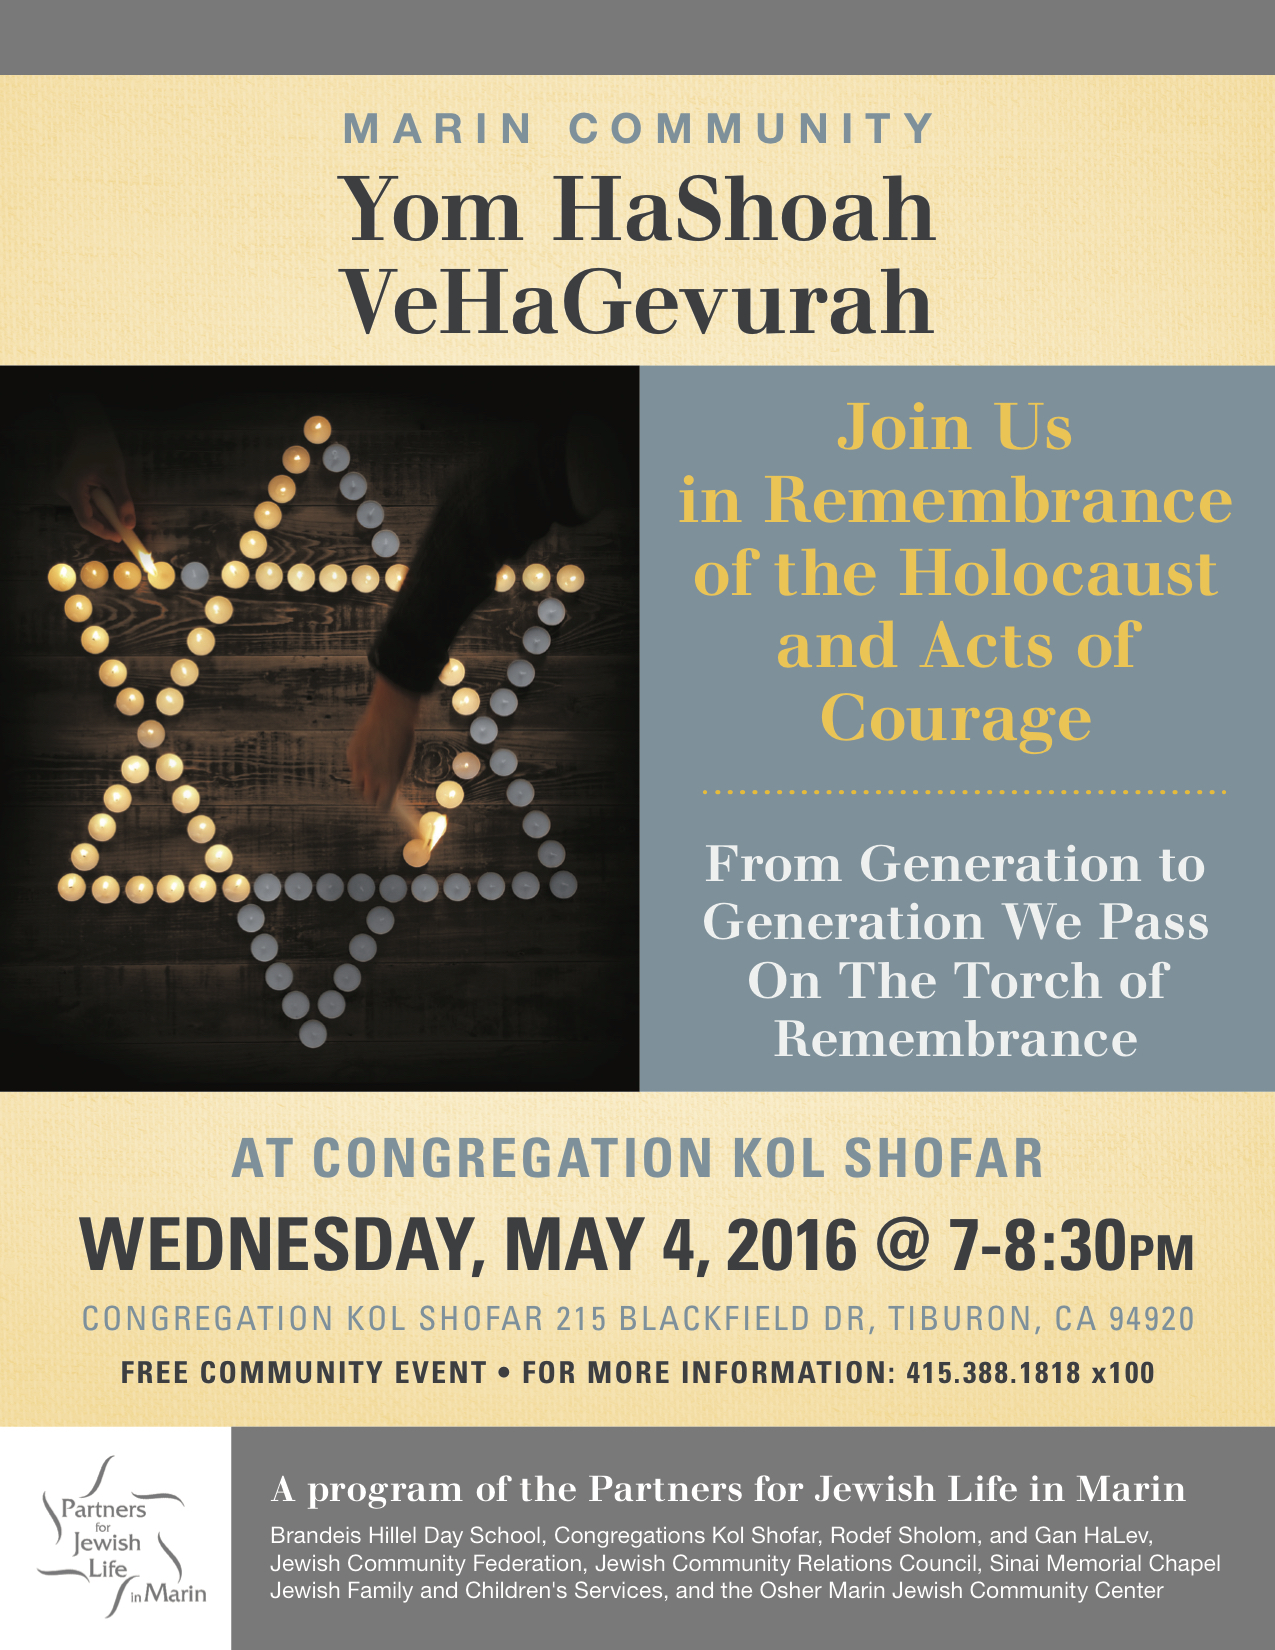 2016 Holocaust Days Of Remembrance Acts Of Courage Poster